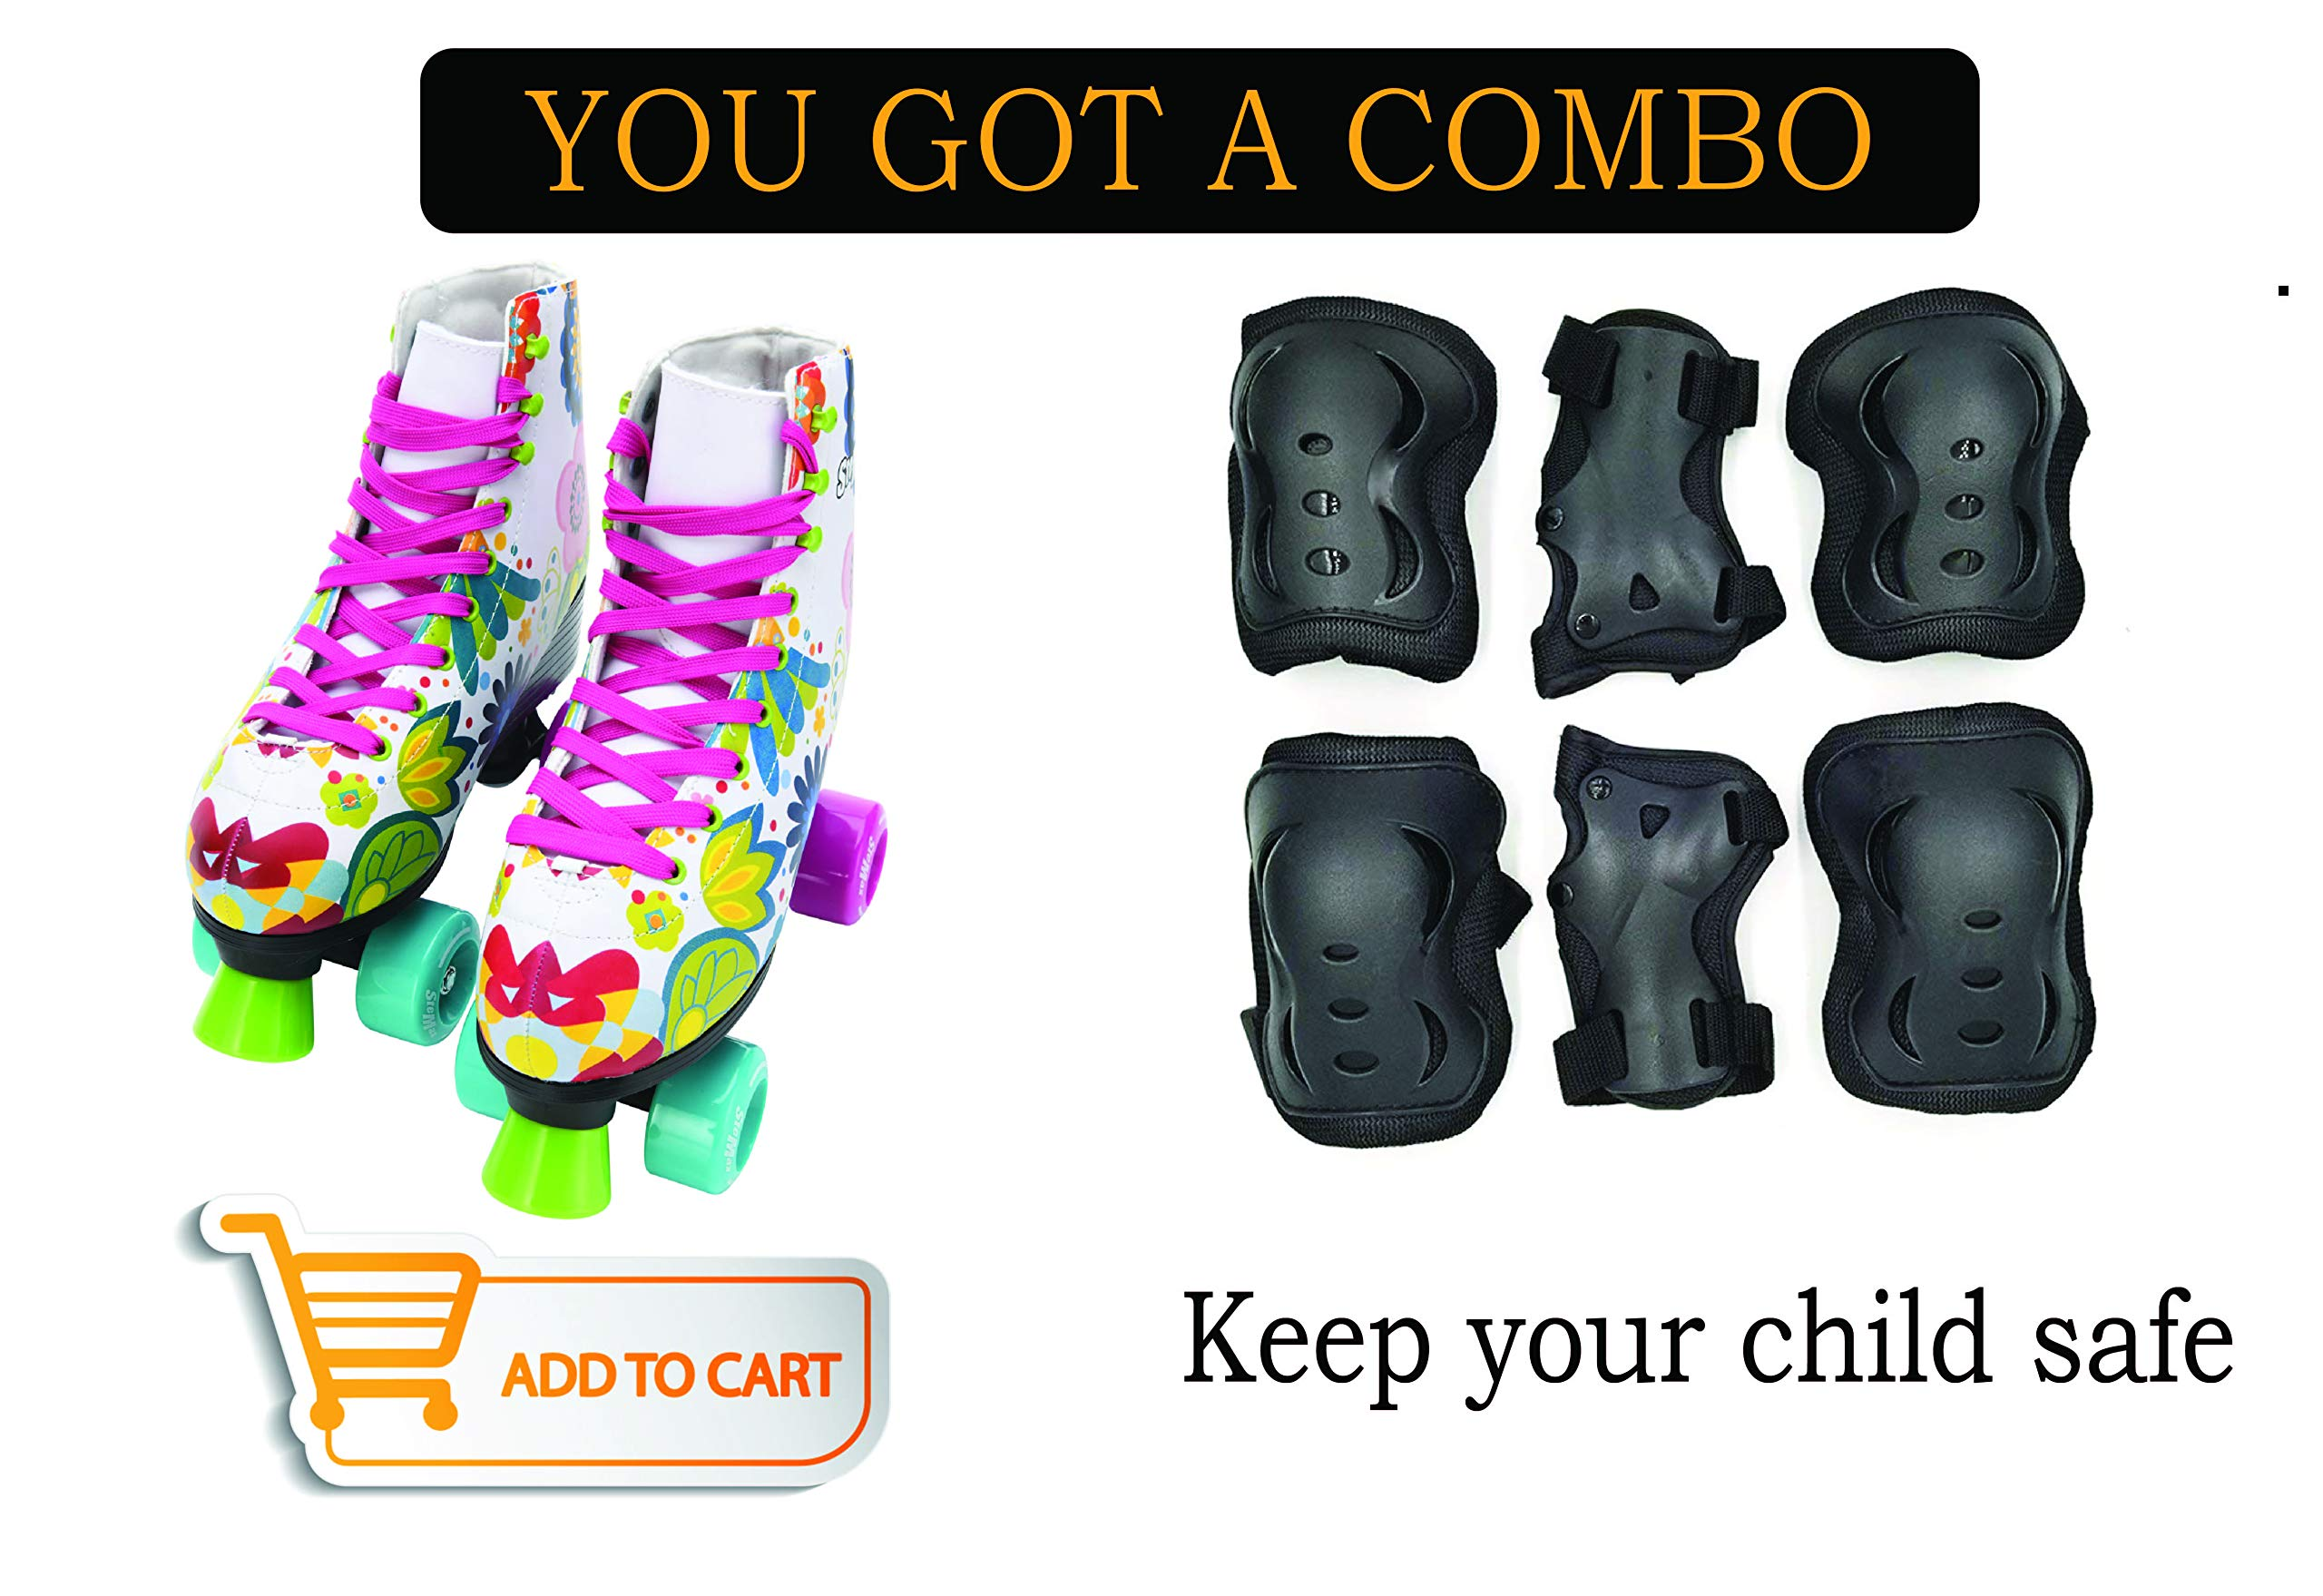 Stemax Combo Quad Roller Skates for Boys - Girls and Knee Pads, Elbow Pads with Wrist Guards - Outdoor-Indoor.